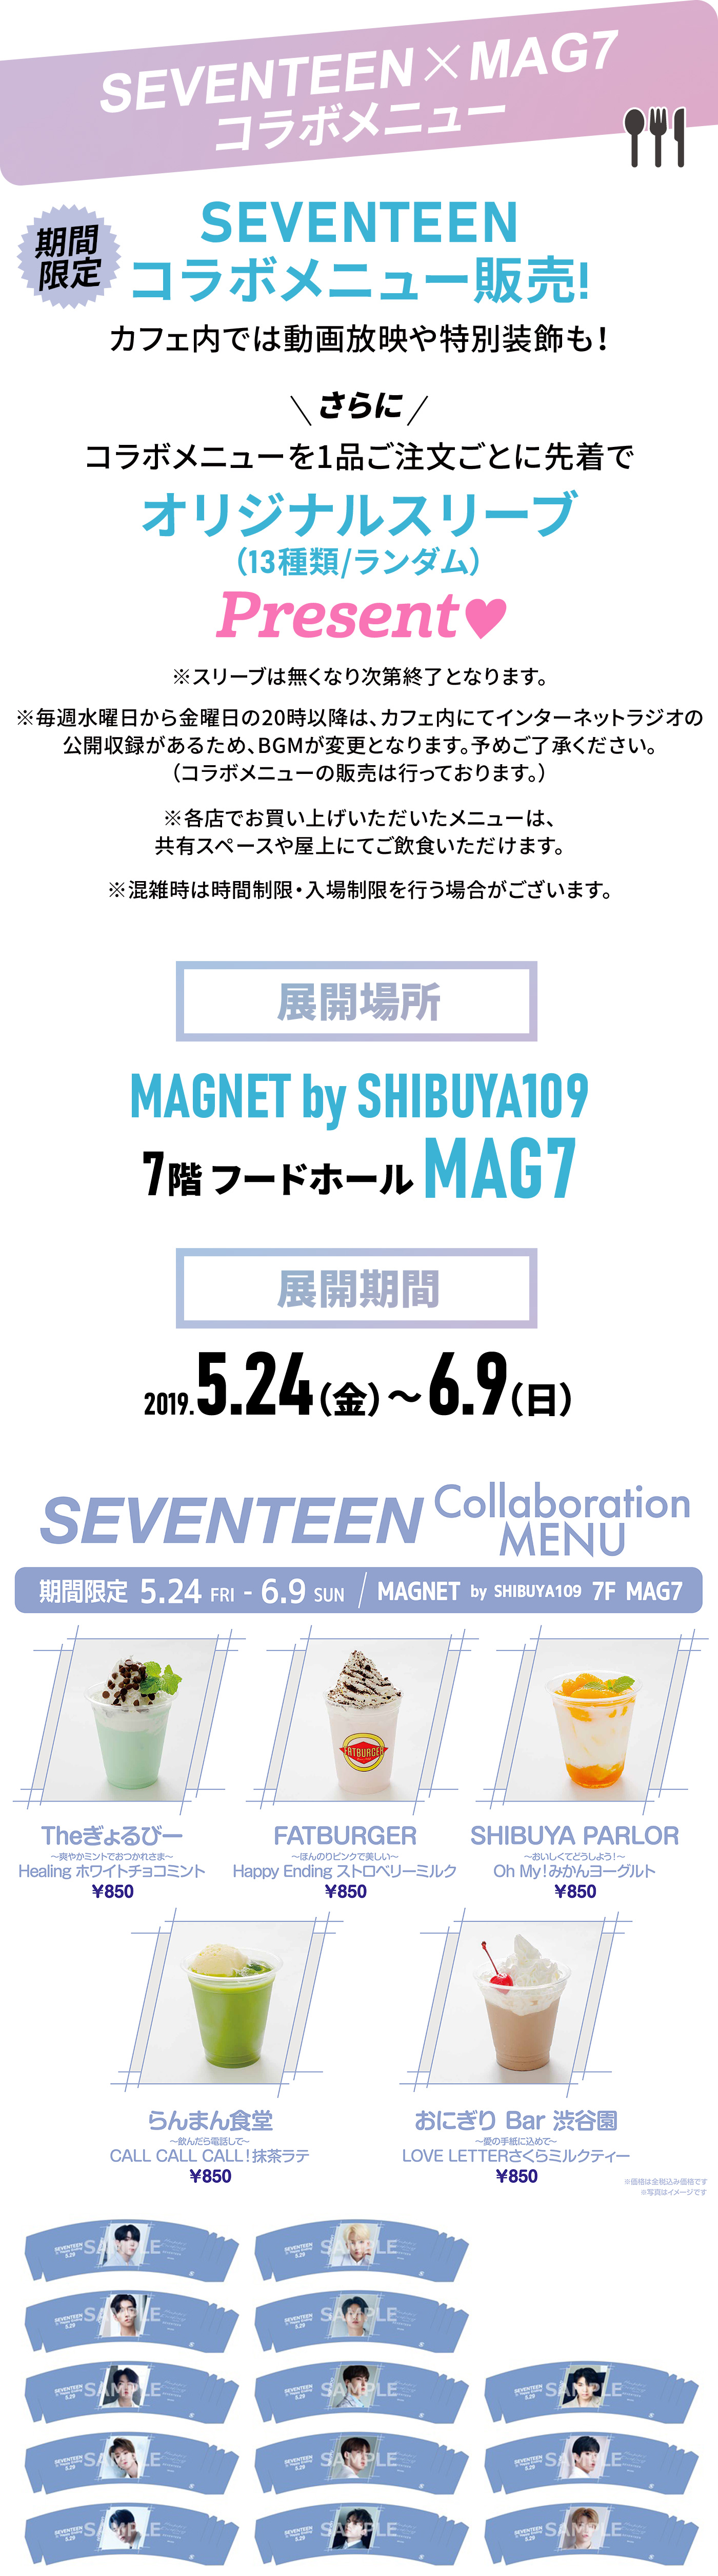 Shibuya 109 - Collaboration Drink Menu for MAG7 located on the 7th floor.